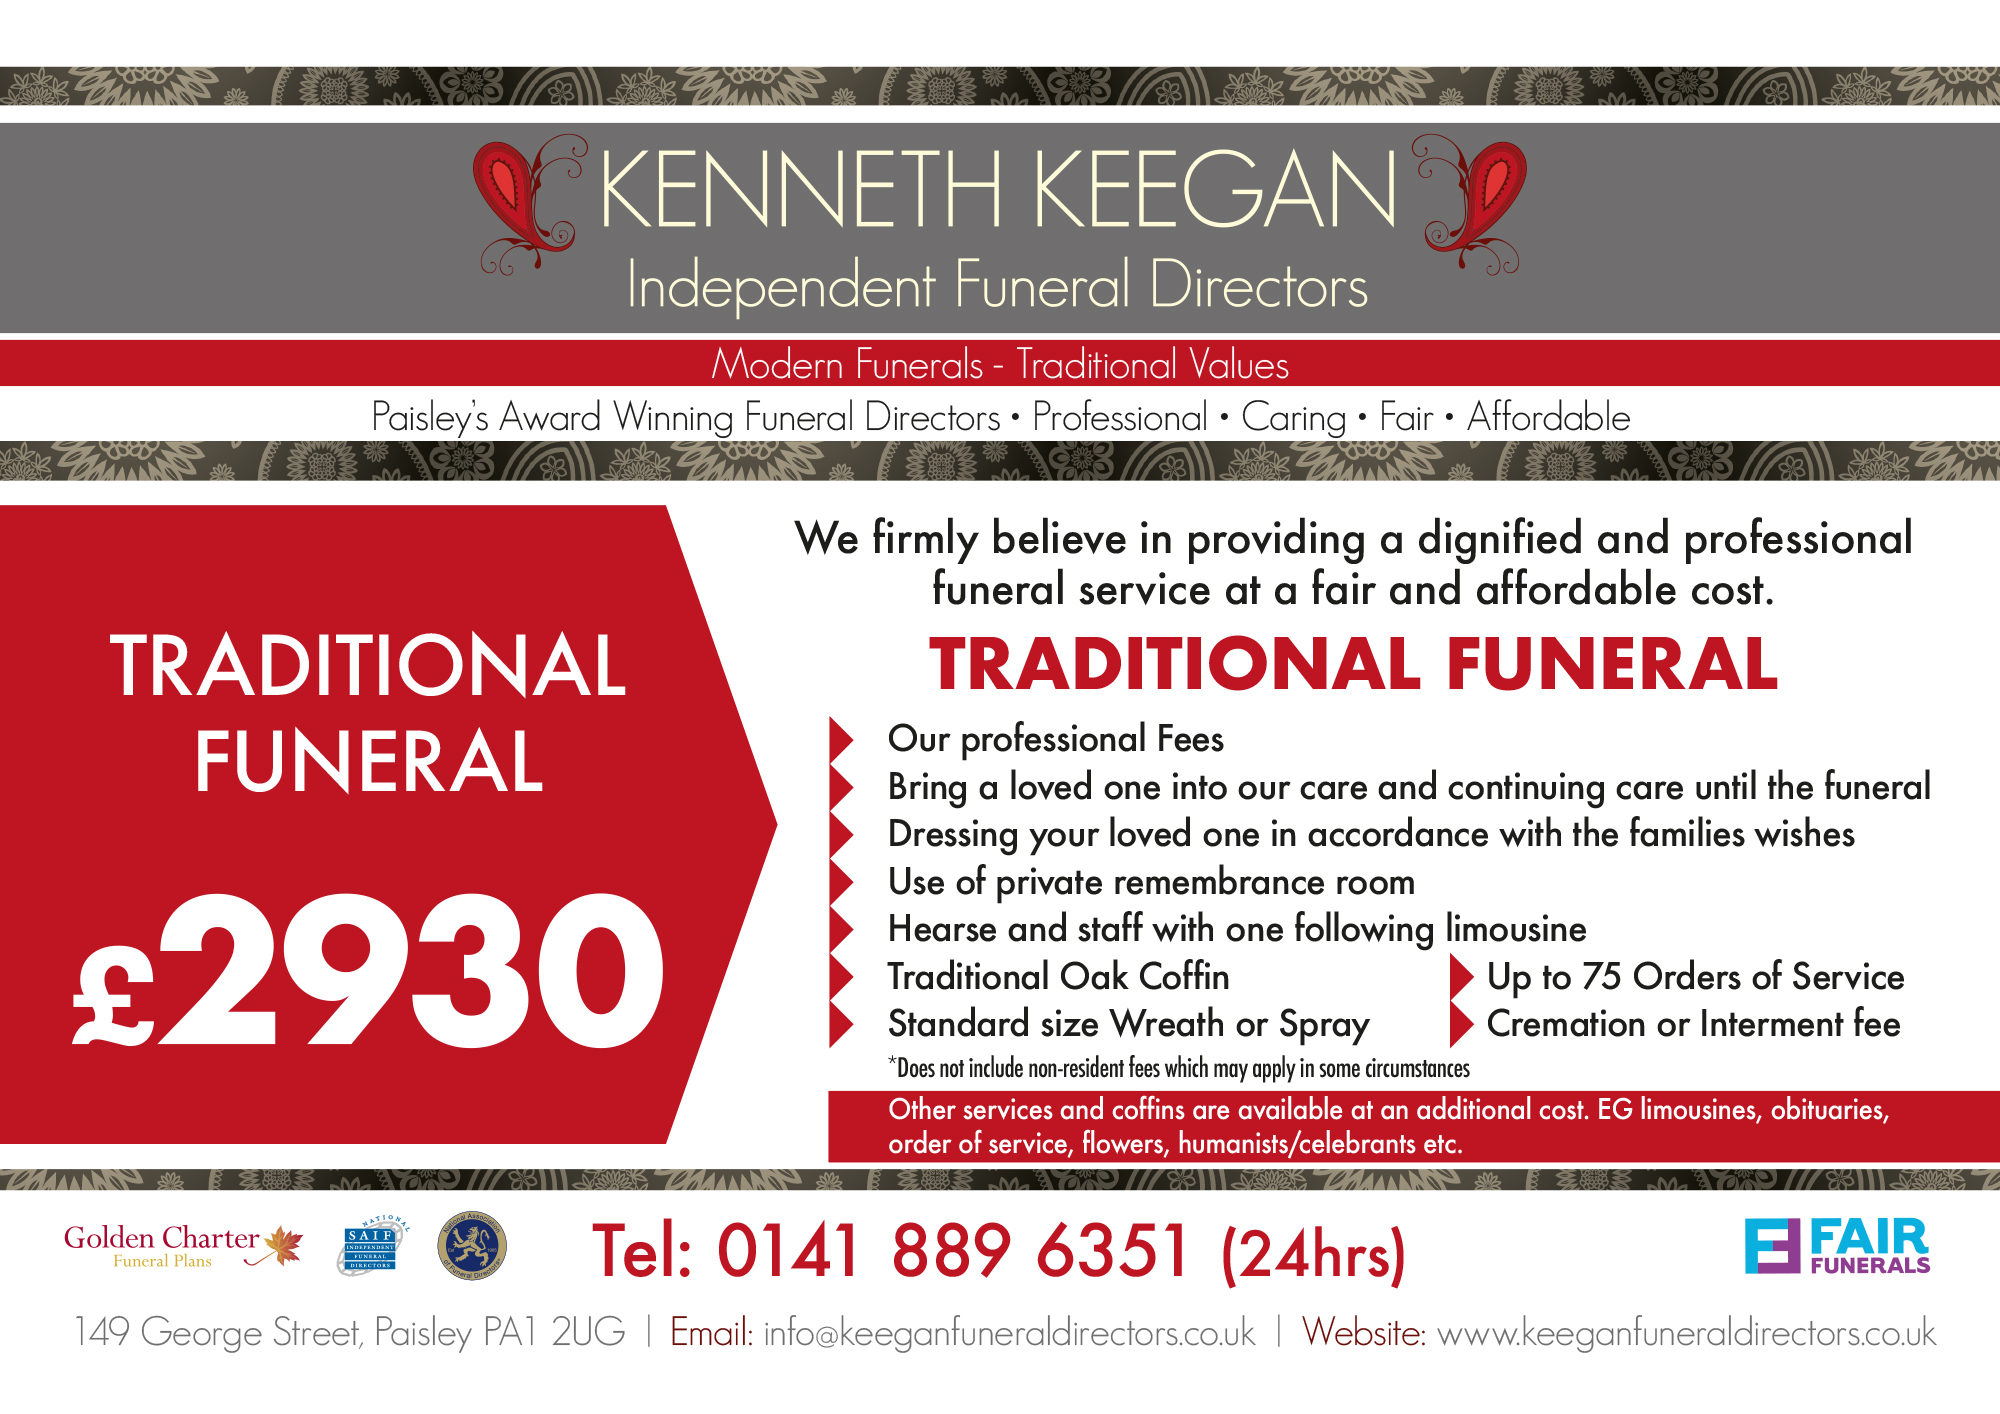 Kenneth-Keegan-Traditional-Funeral-A4L-11-10-18